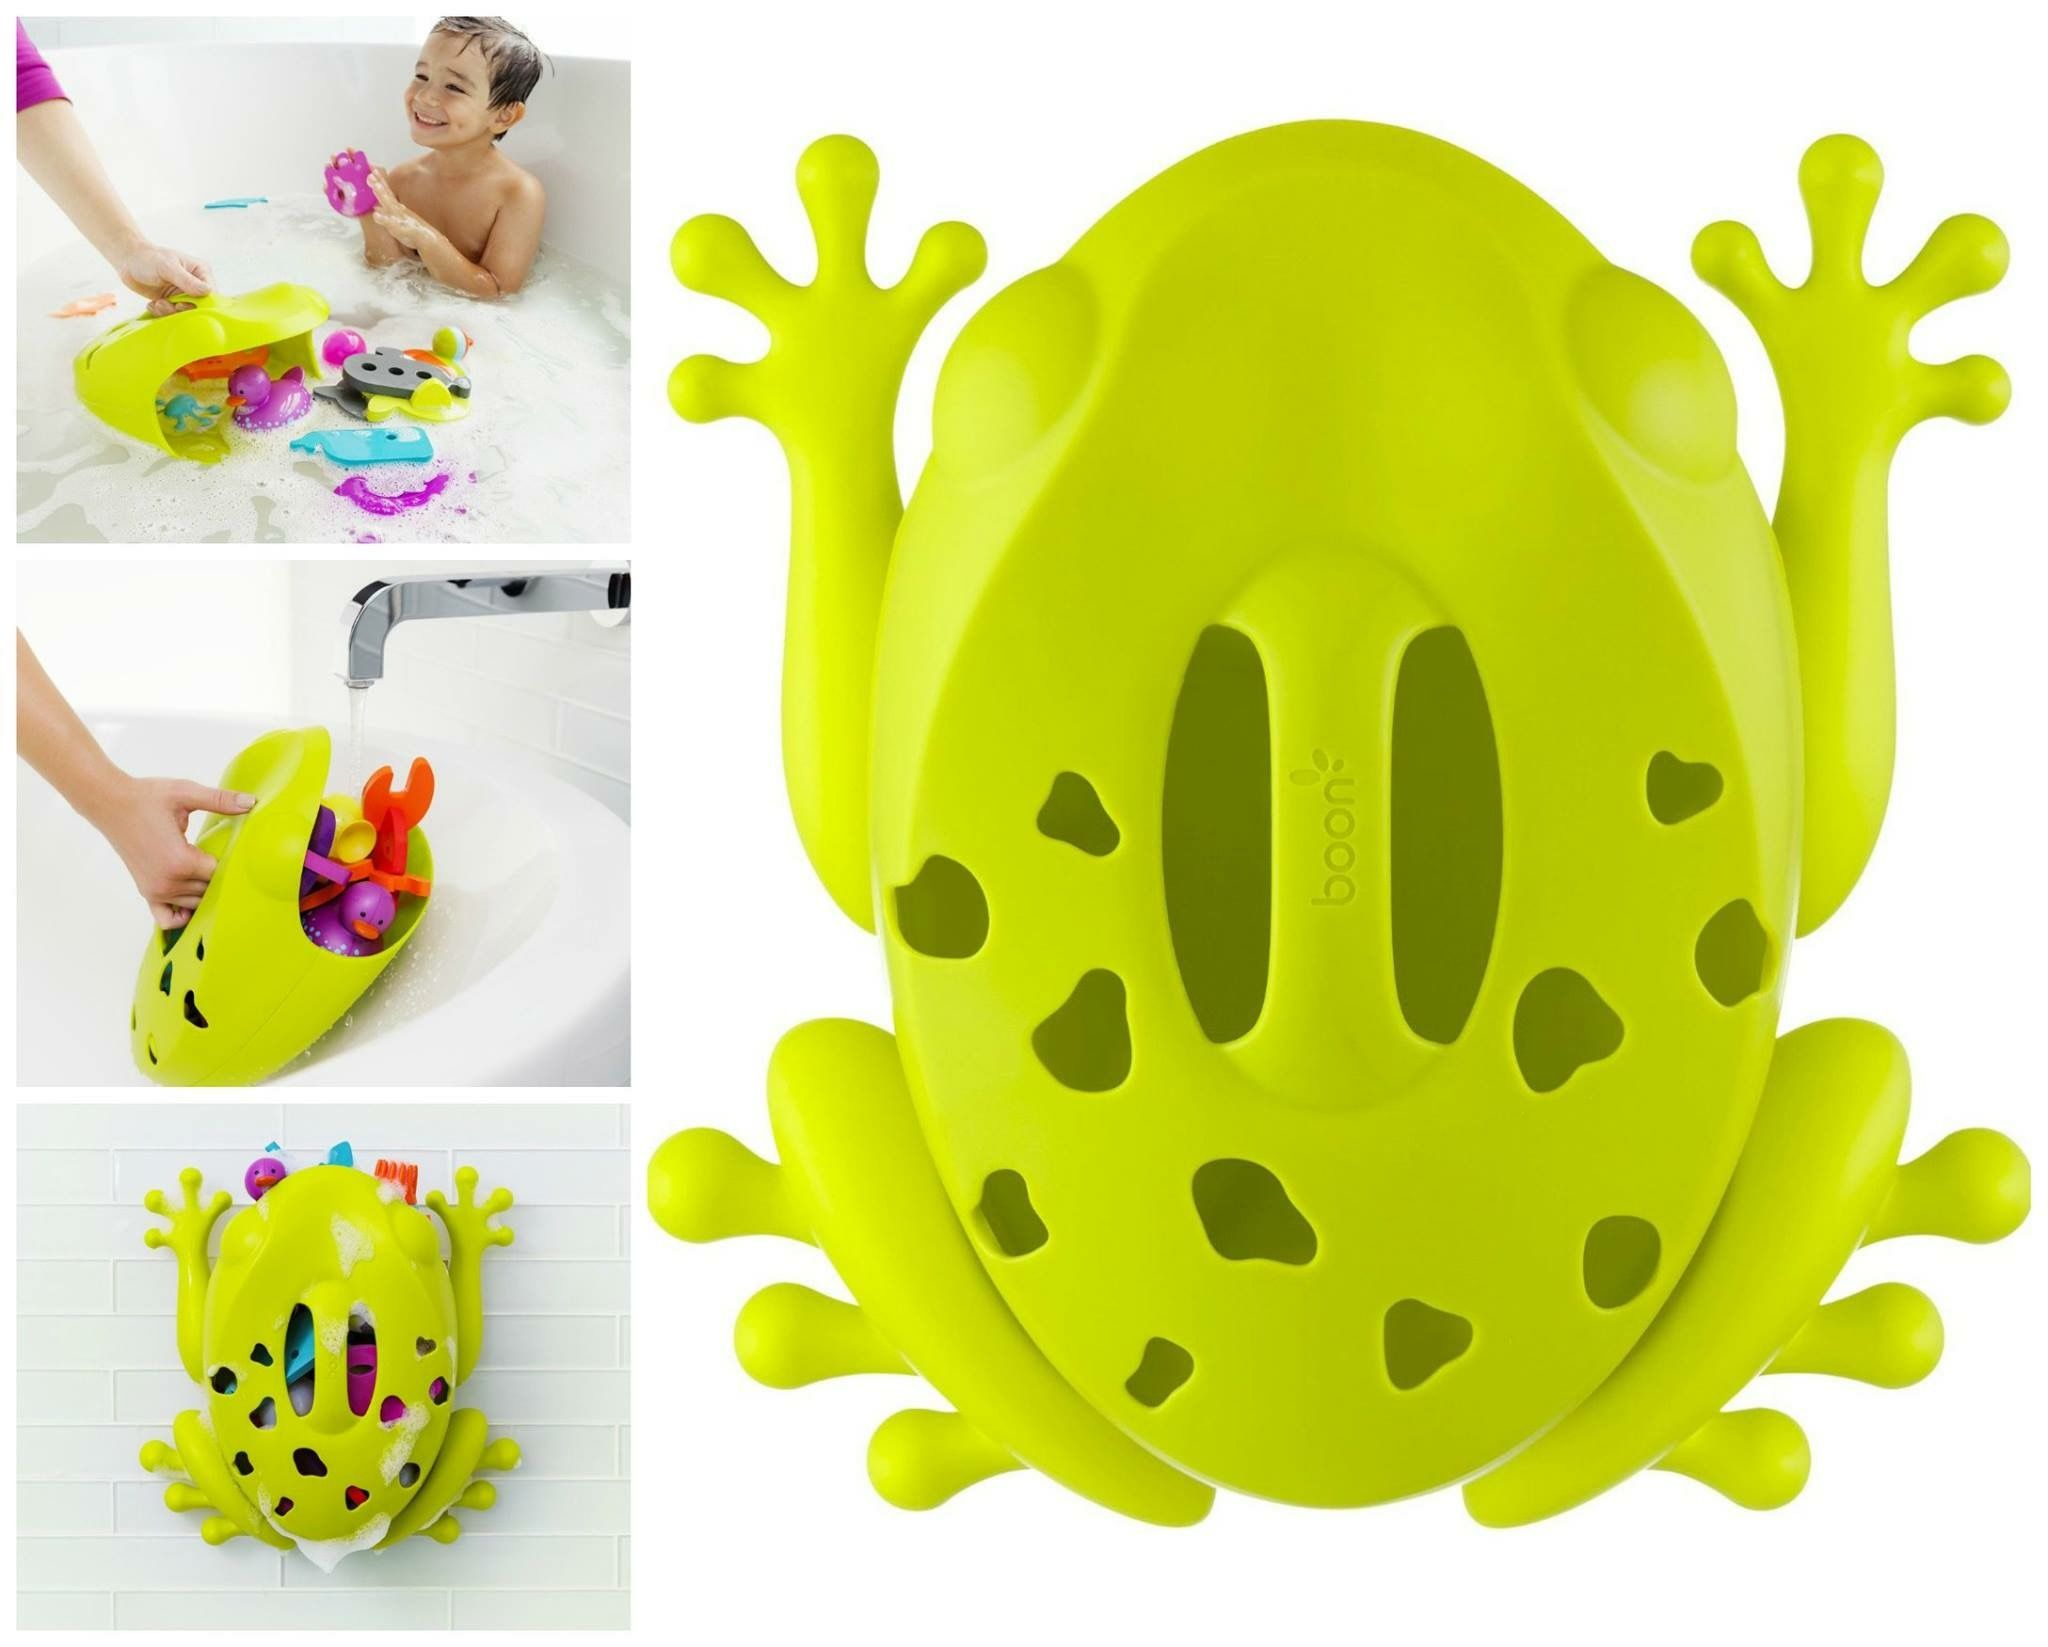 Stores And Organizes Bath Toys For Kids Fun Easy Green Frog Pod Bath Toy Scoop